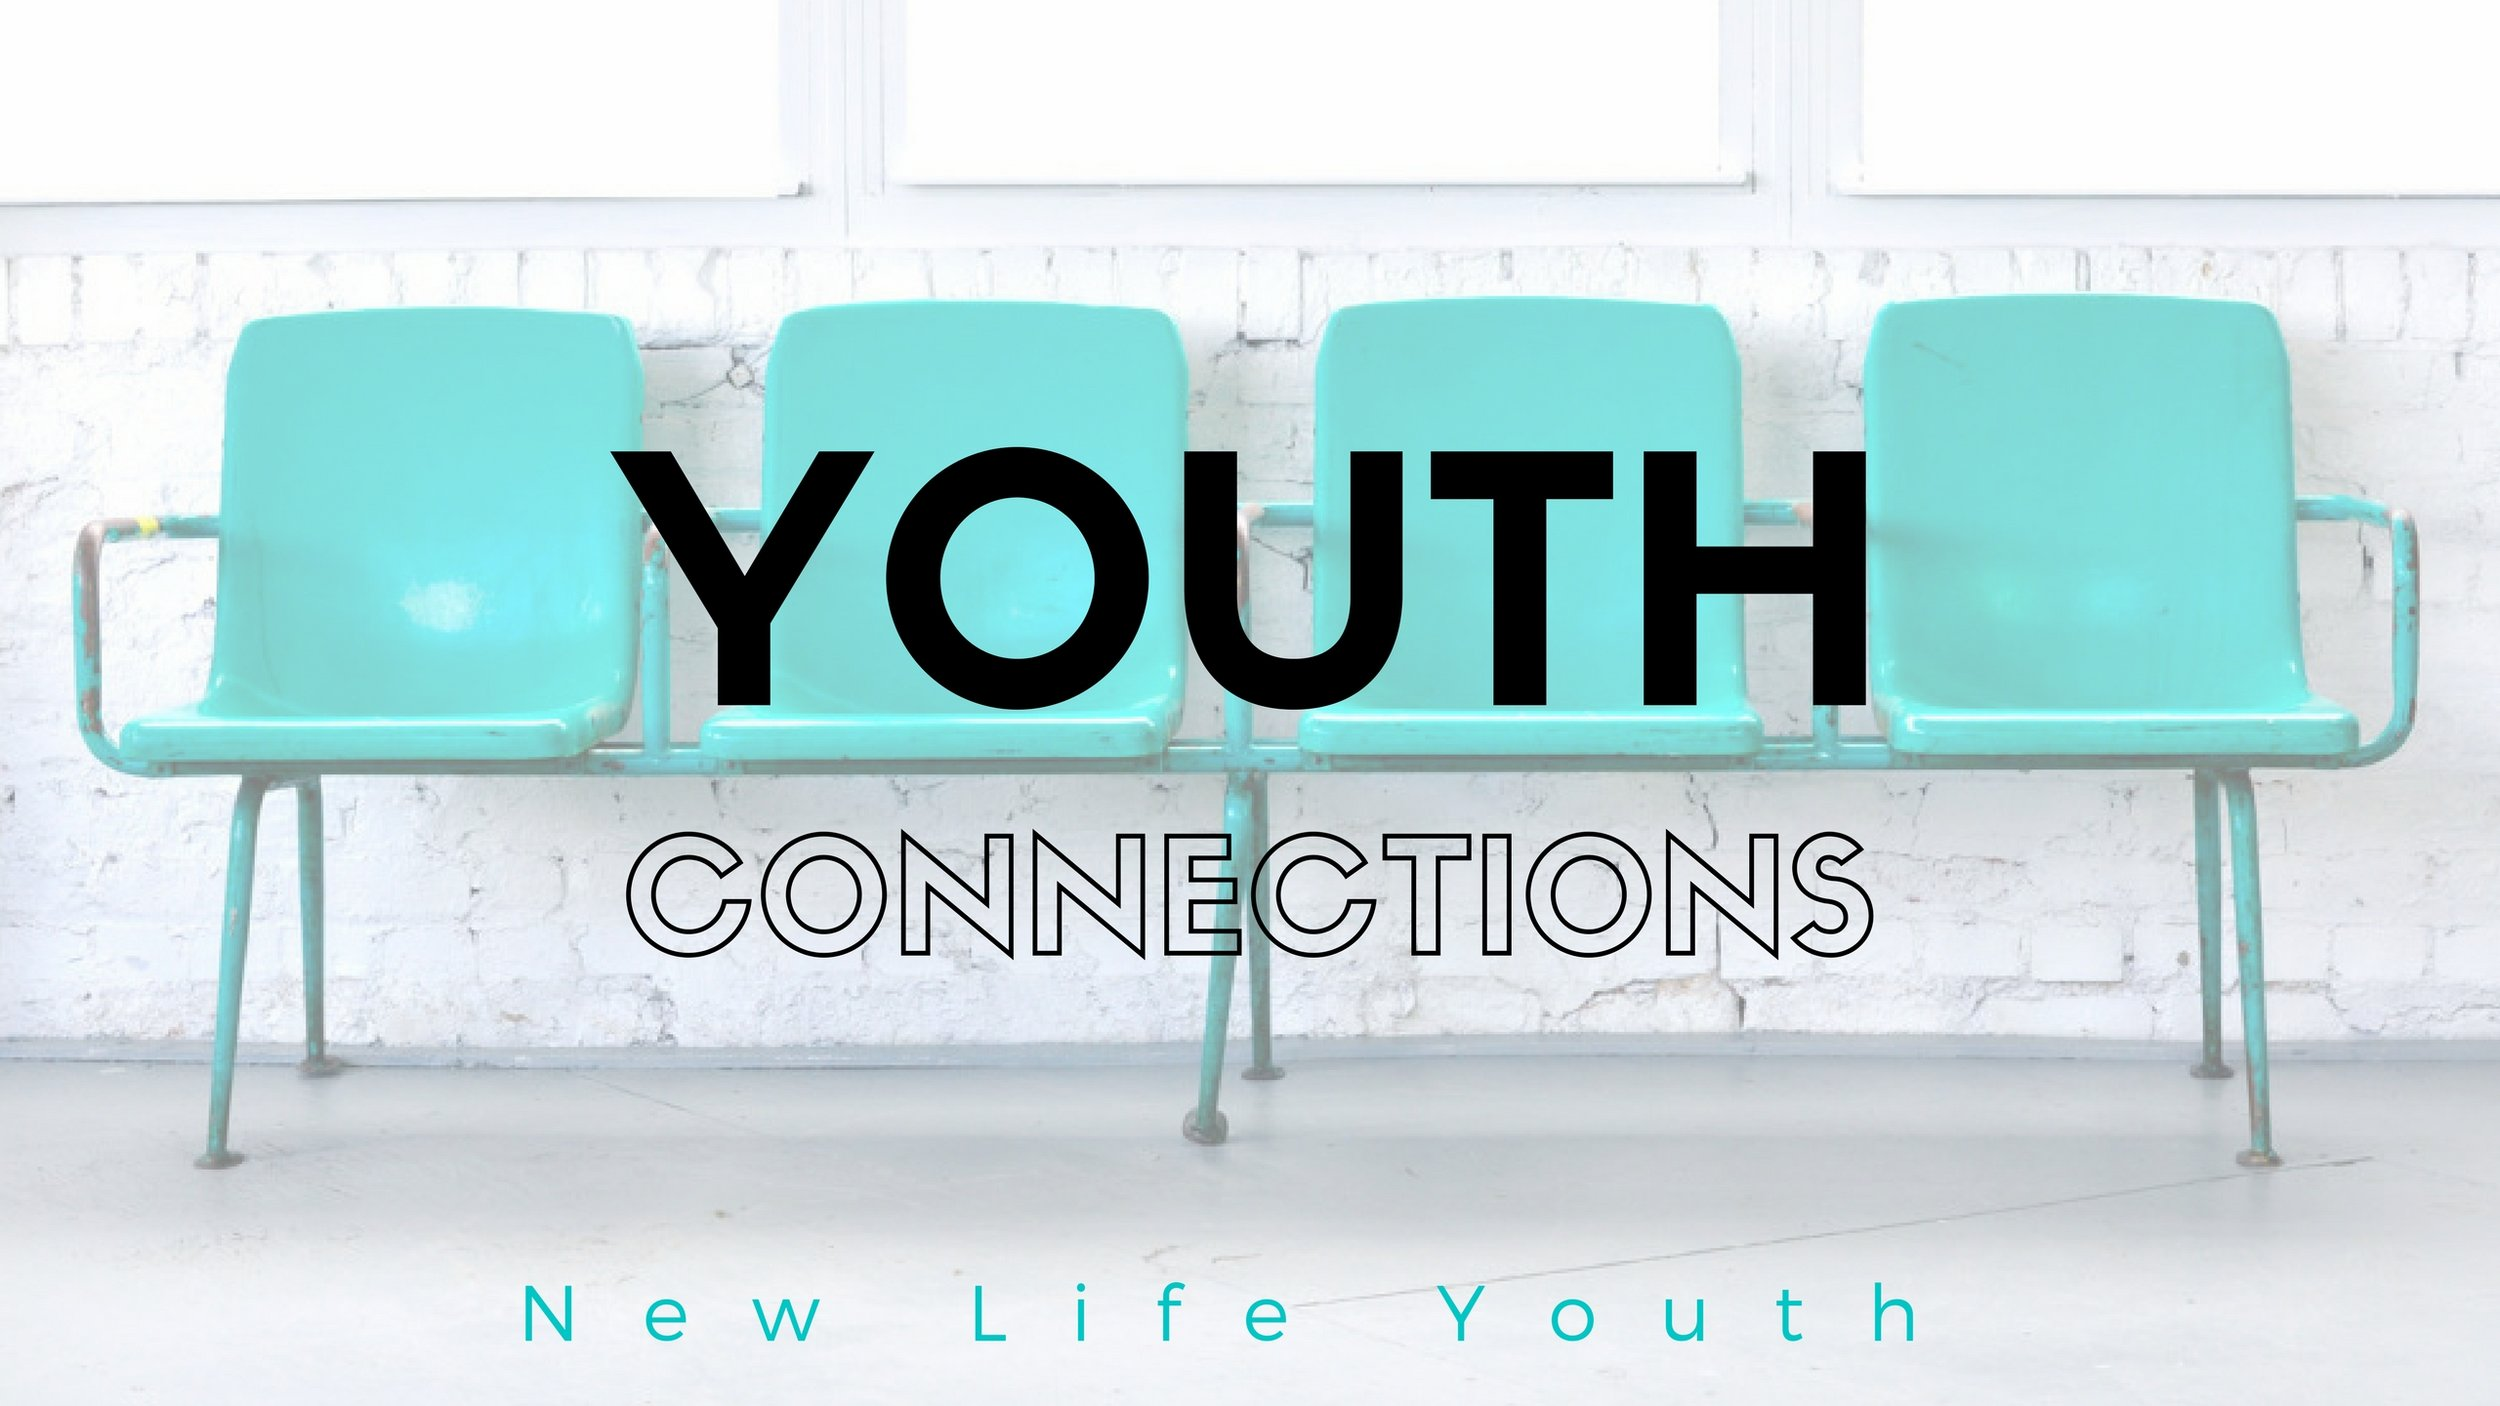 Youth Connections ministry New Life Baptist Church Greencastle, IN